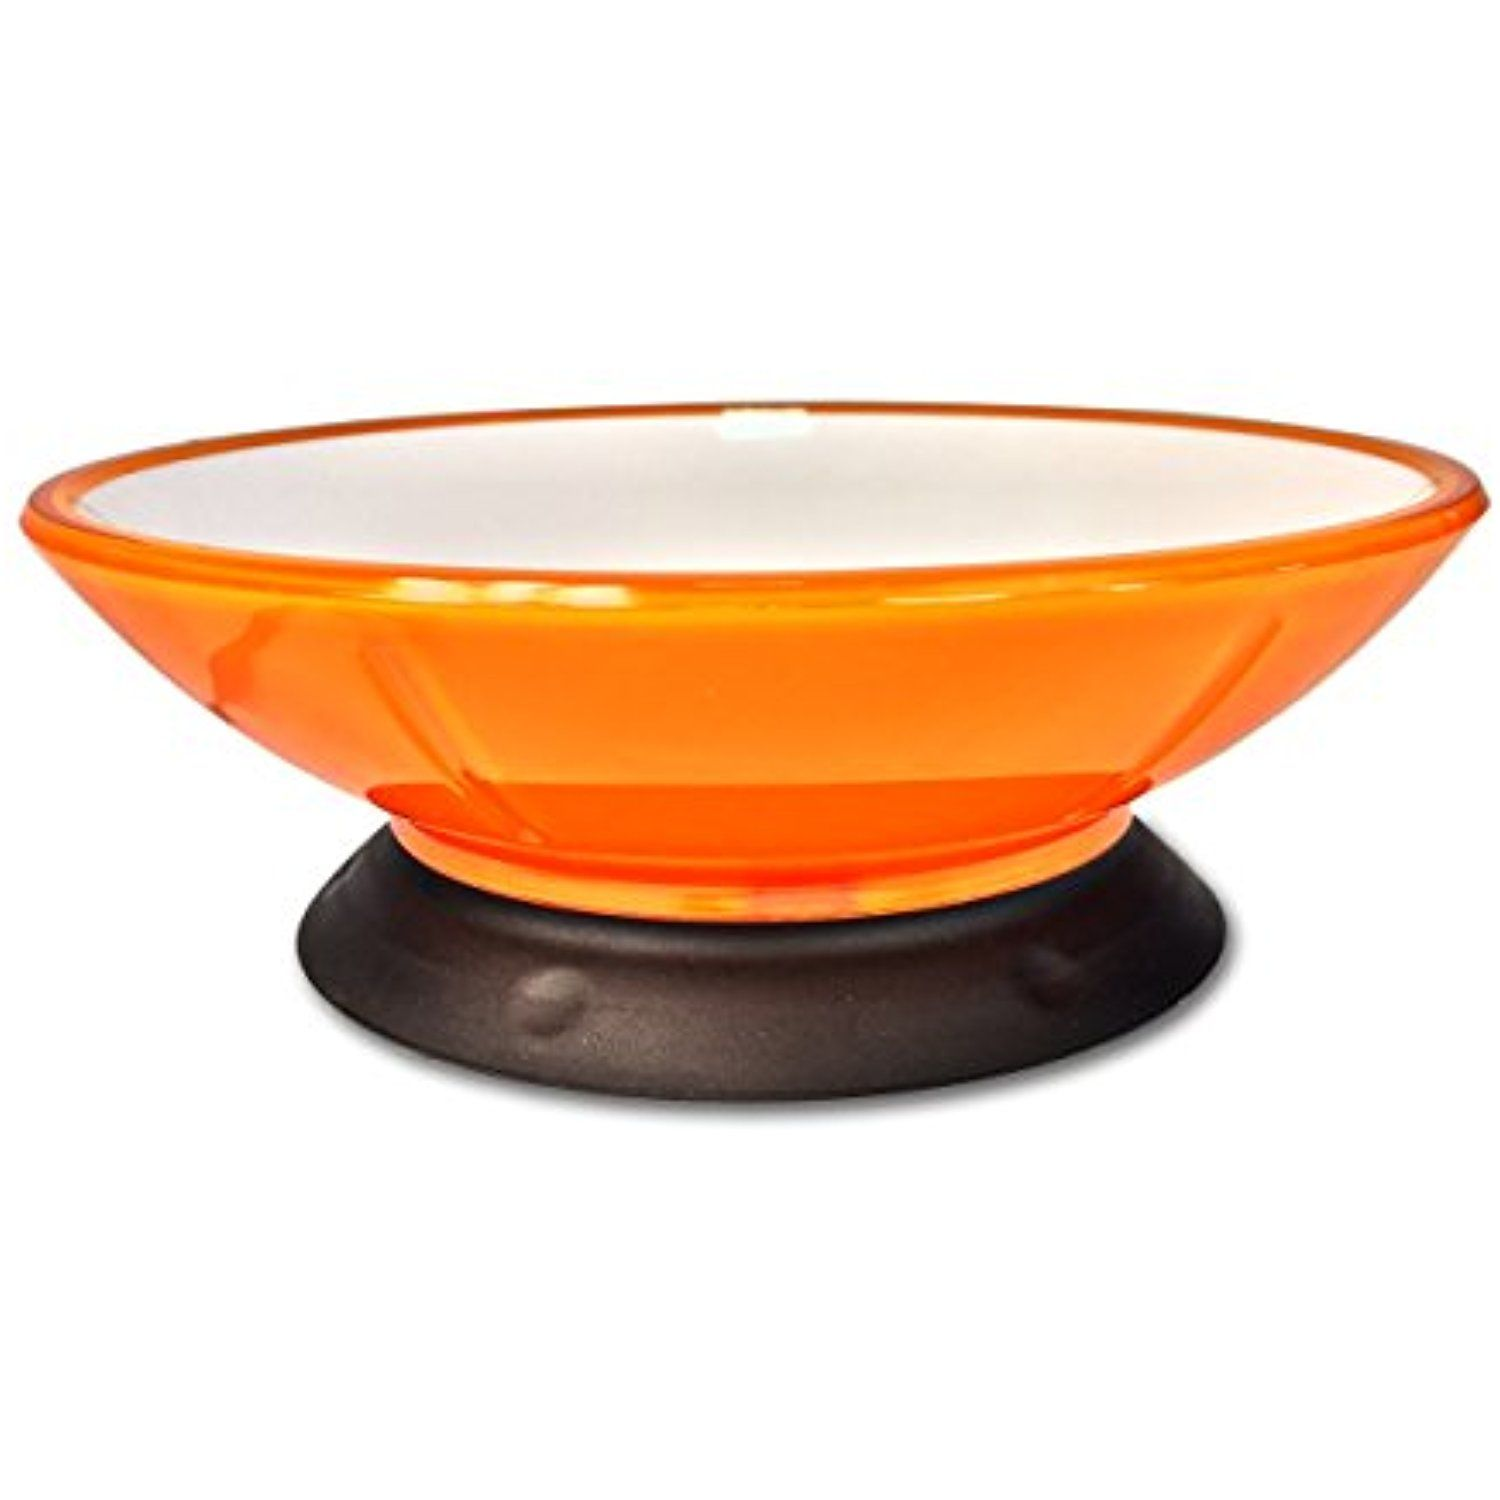 Modapet 2 Cup Pedestal Base Dog And Cat Bowl Tangerine For More